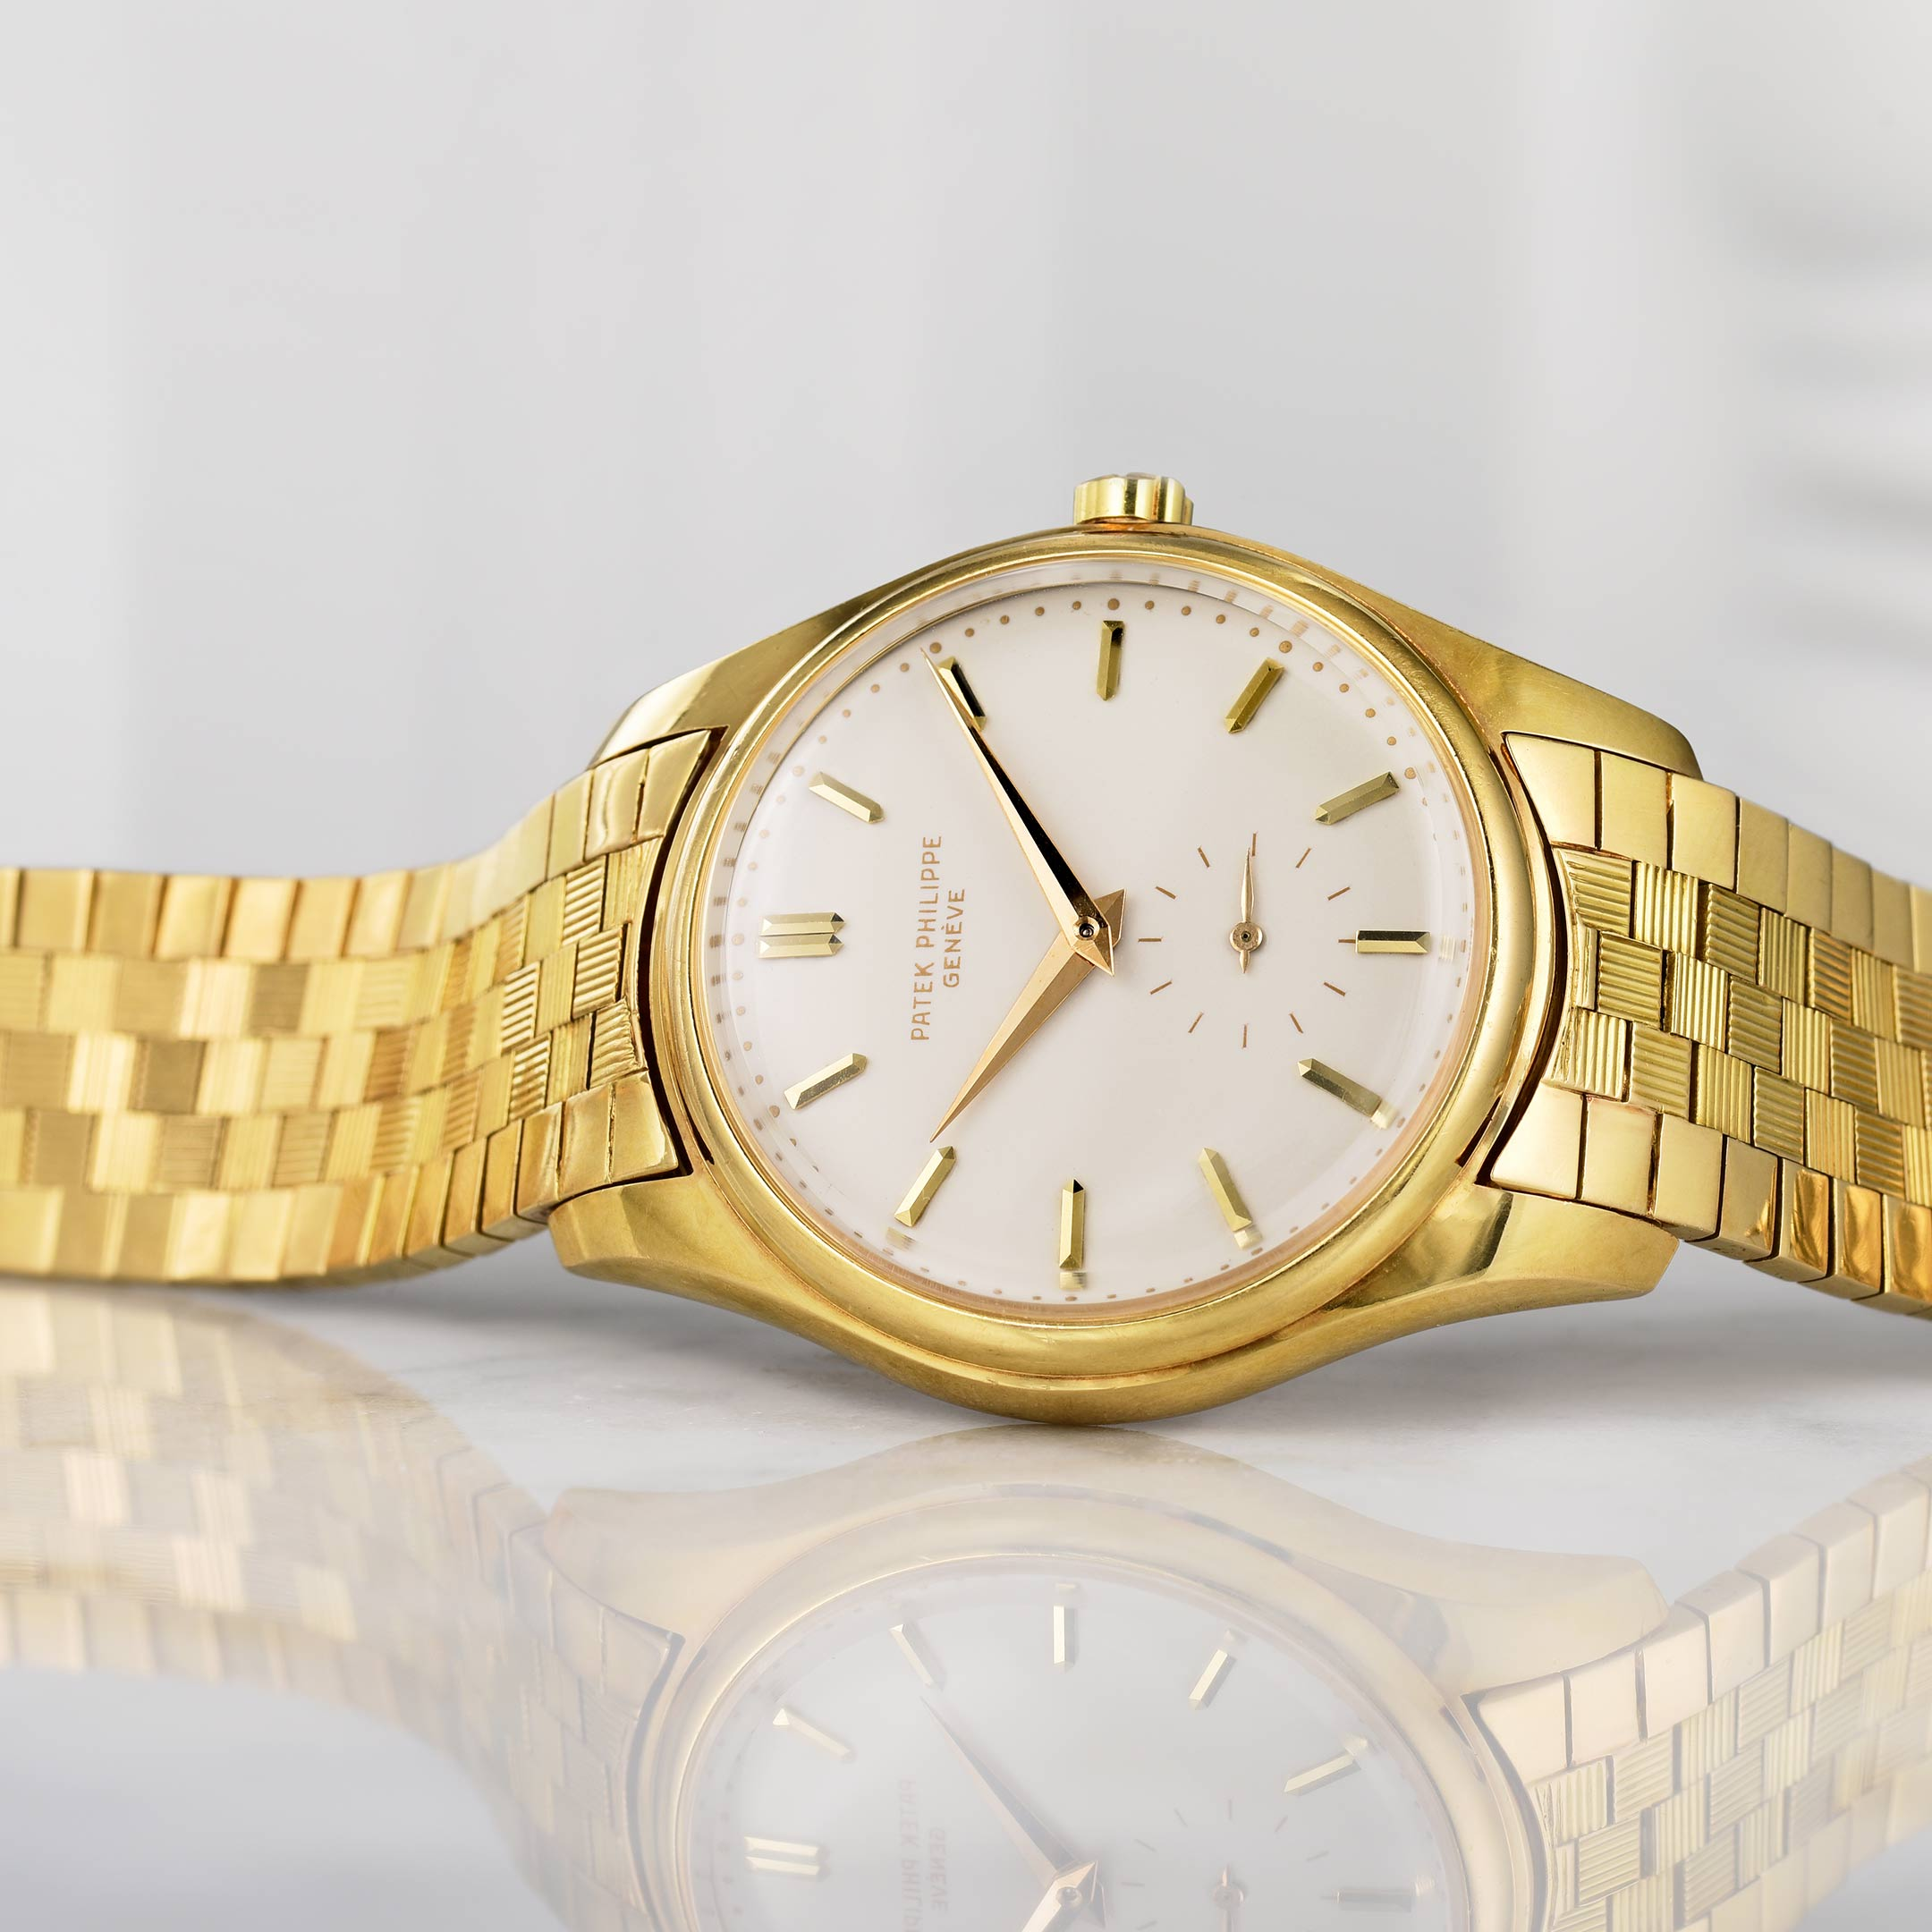 Patek Philippe Ref. 2526 Fratello Watches - Fortuna NYC Fine Jewelry & Watch Auction